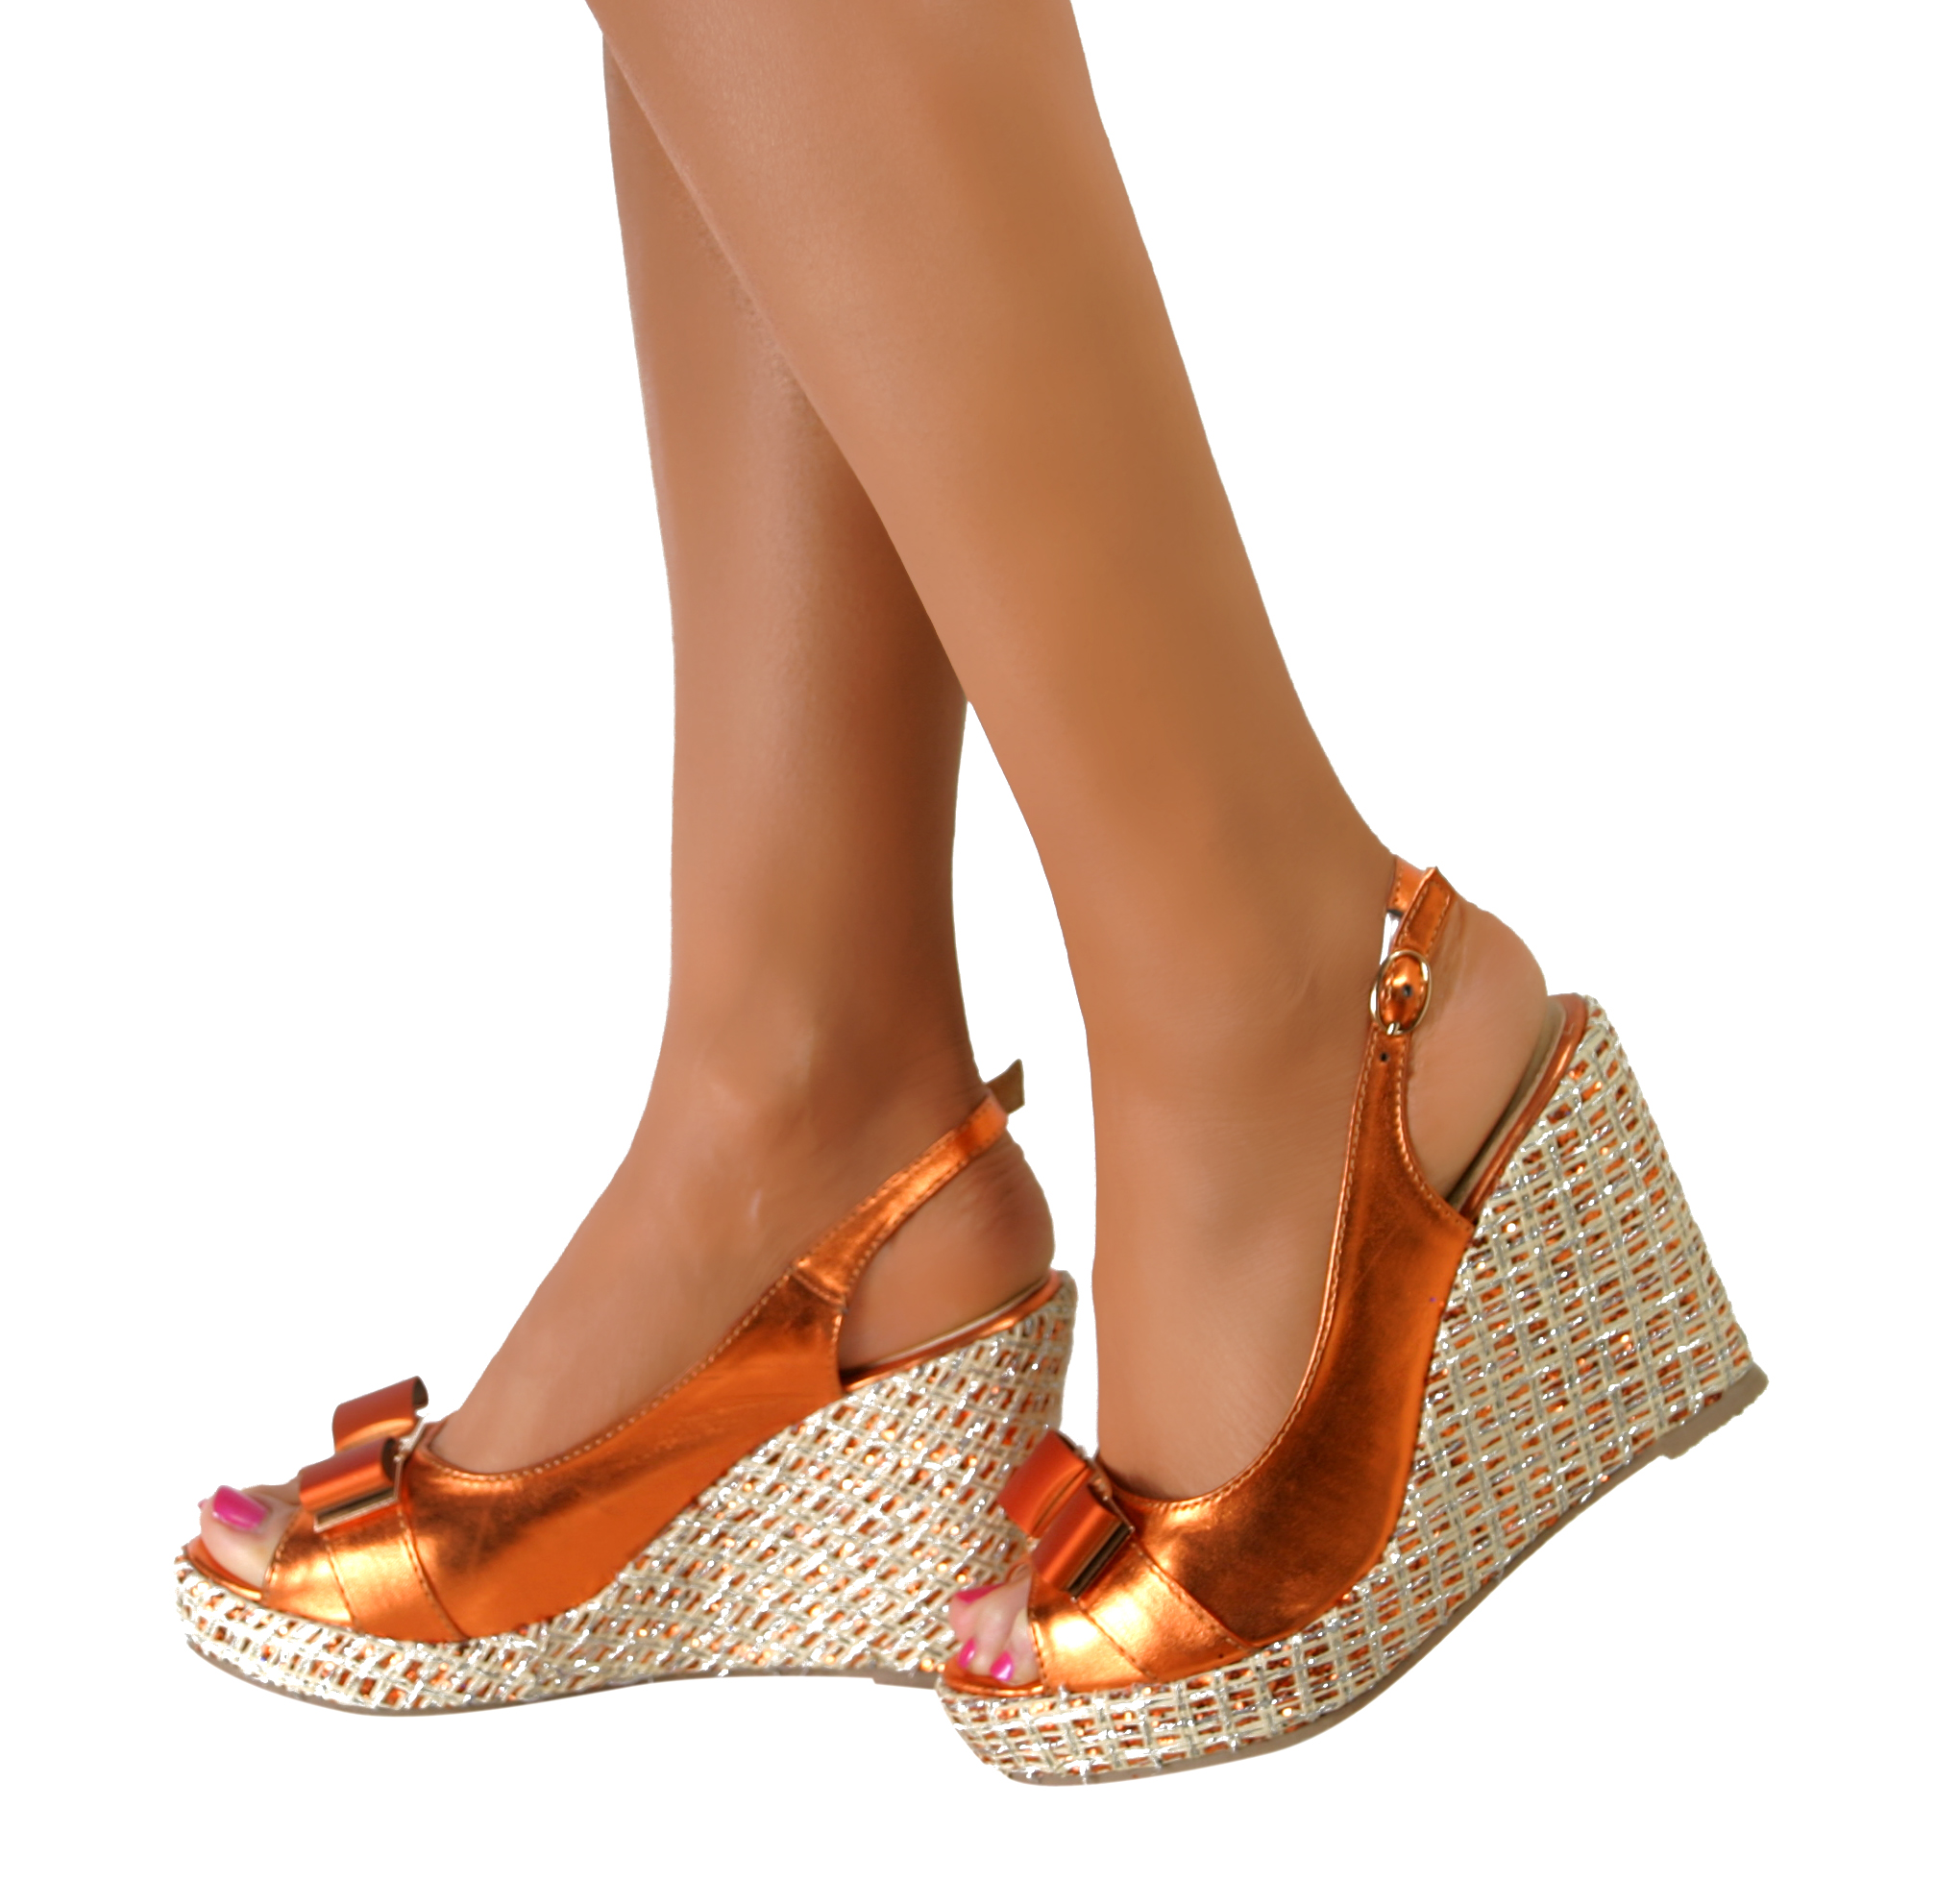 We Like 'em High. If you're a fan of heels, you'll love our collection of sky high heels. Stop in and shop all the trendy new styles, such as comfortable high heels, suede platform heels, pointy stilettos, heeled sandals, and more!